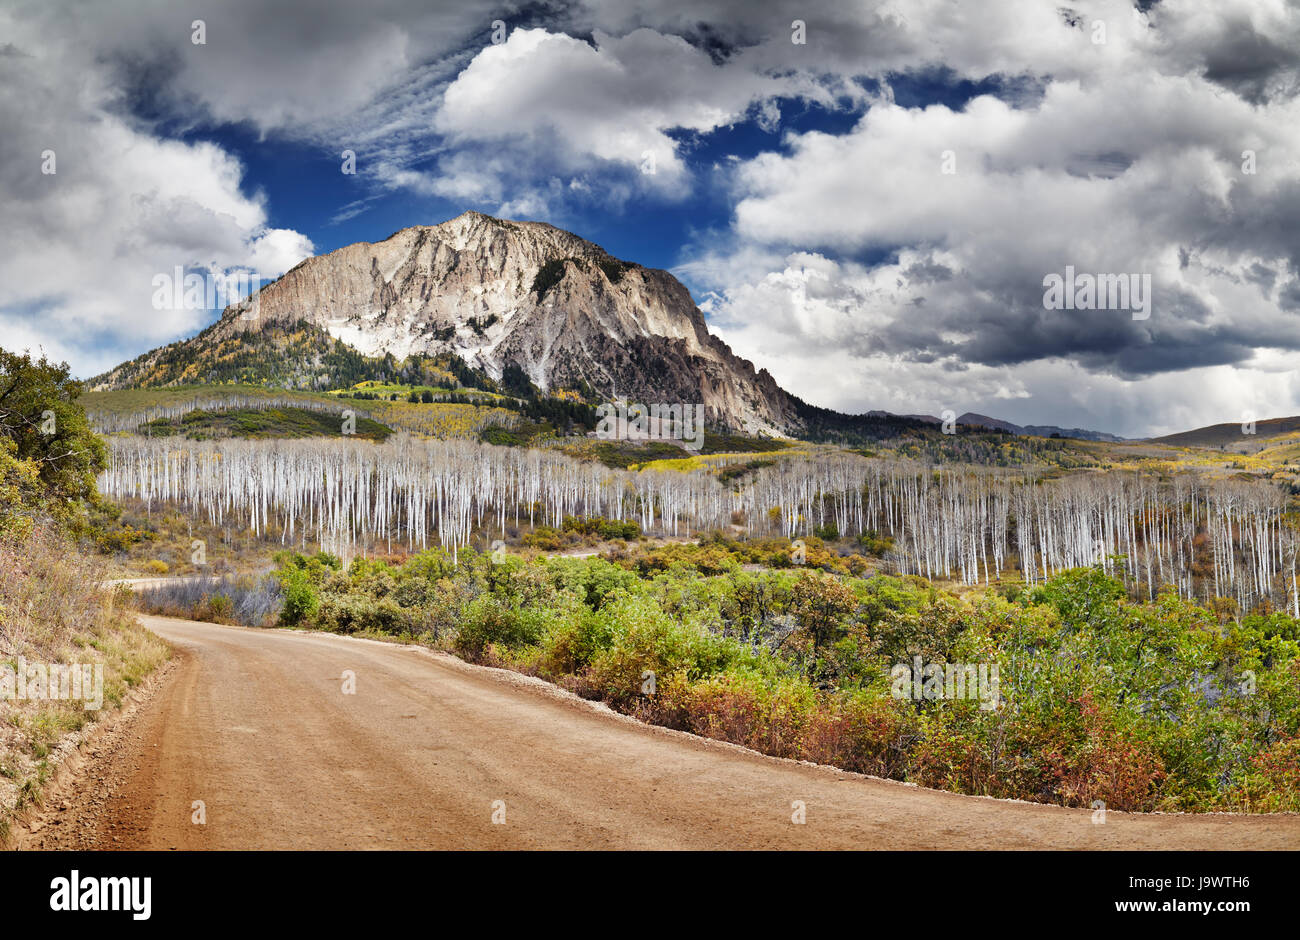 Kebler Pass et Marcellina sur la montagne, Crested Butte, Colorado, USA Photo Stock